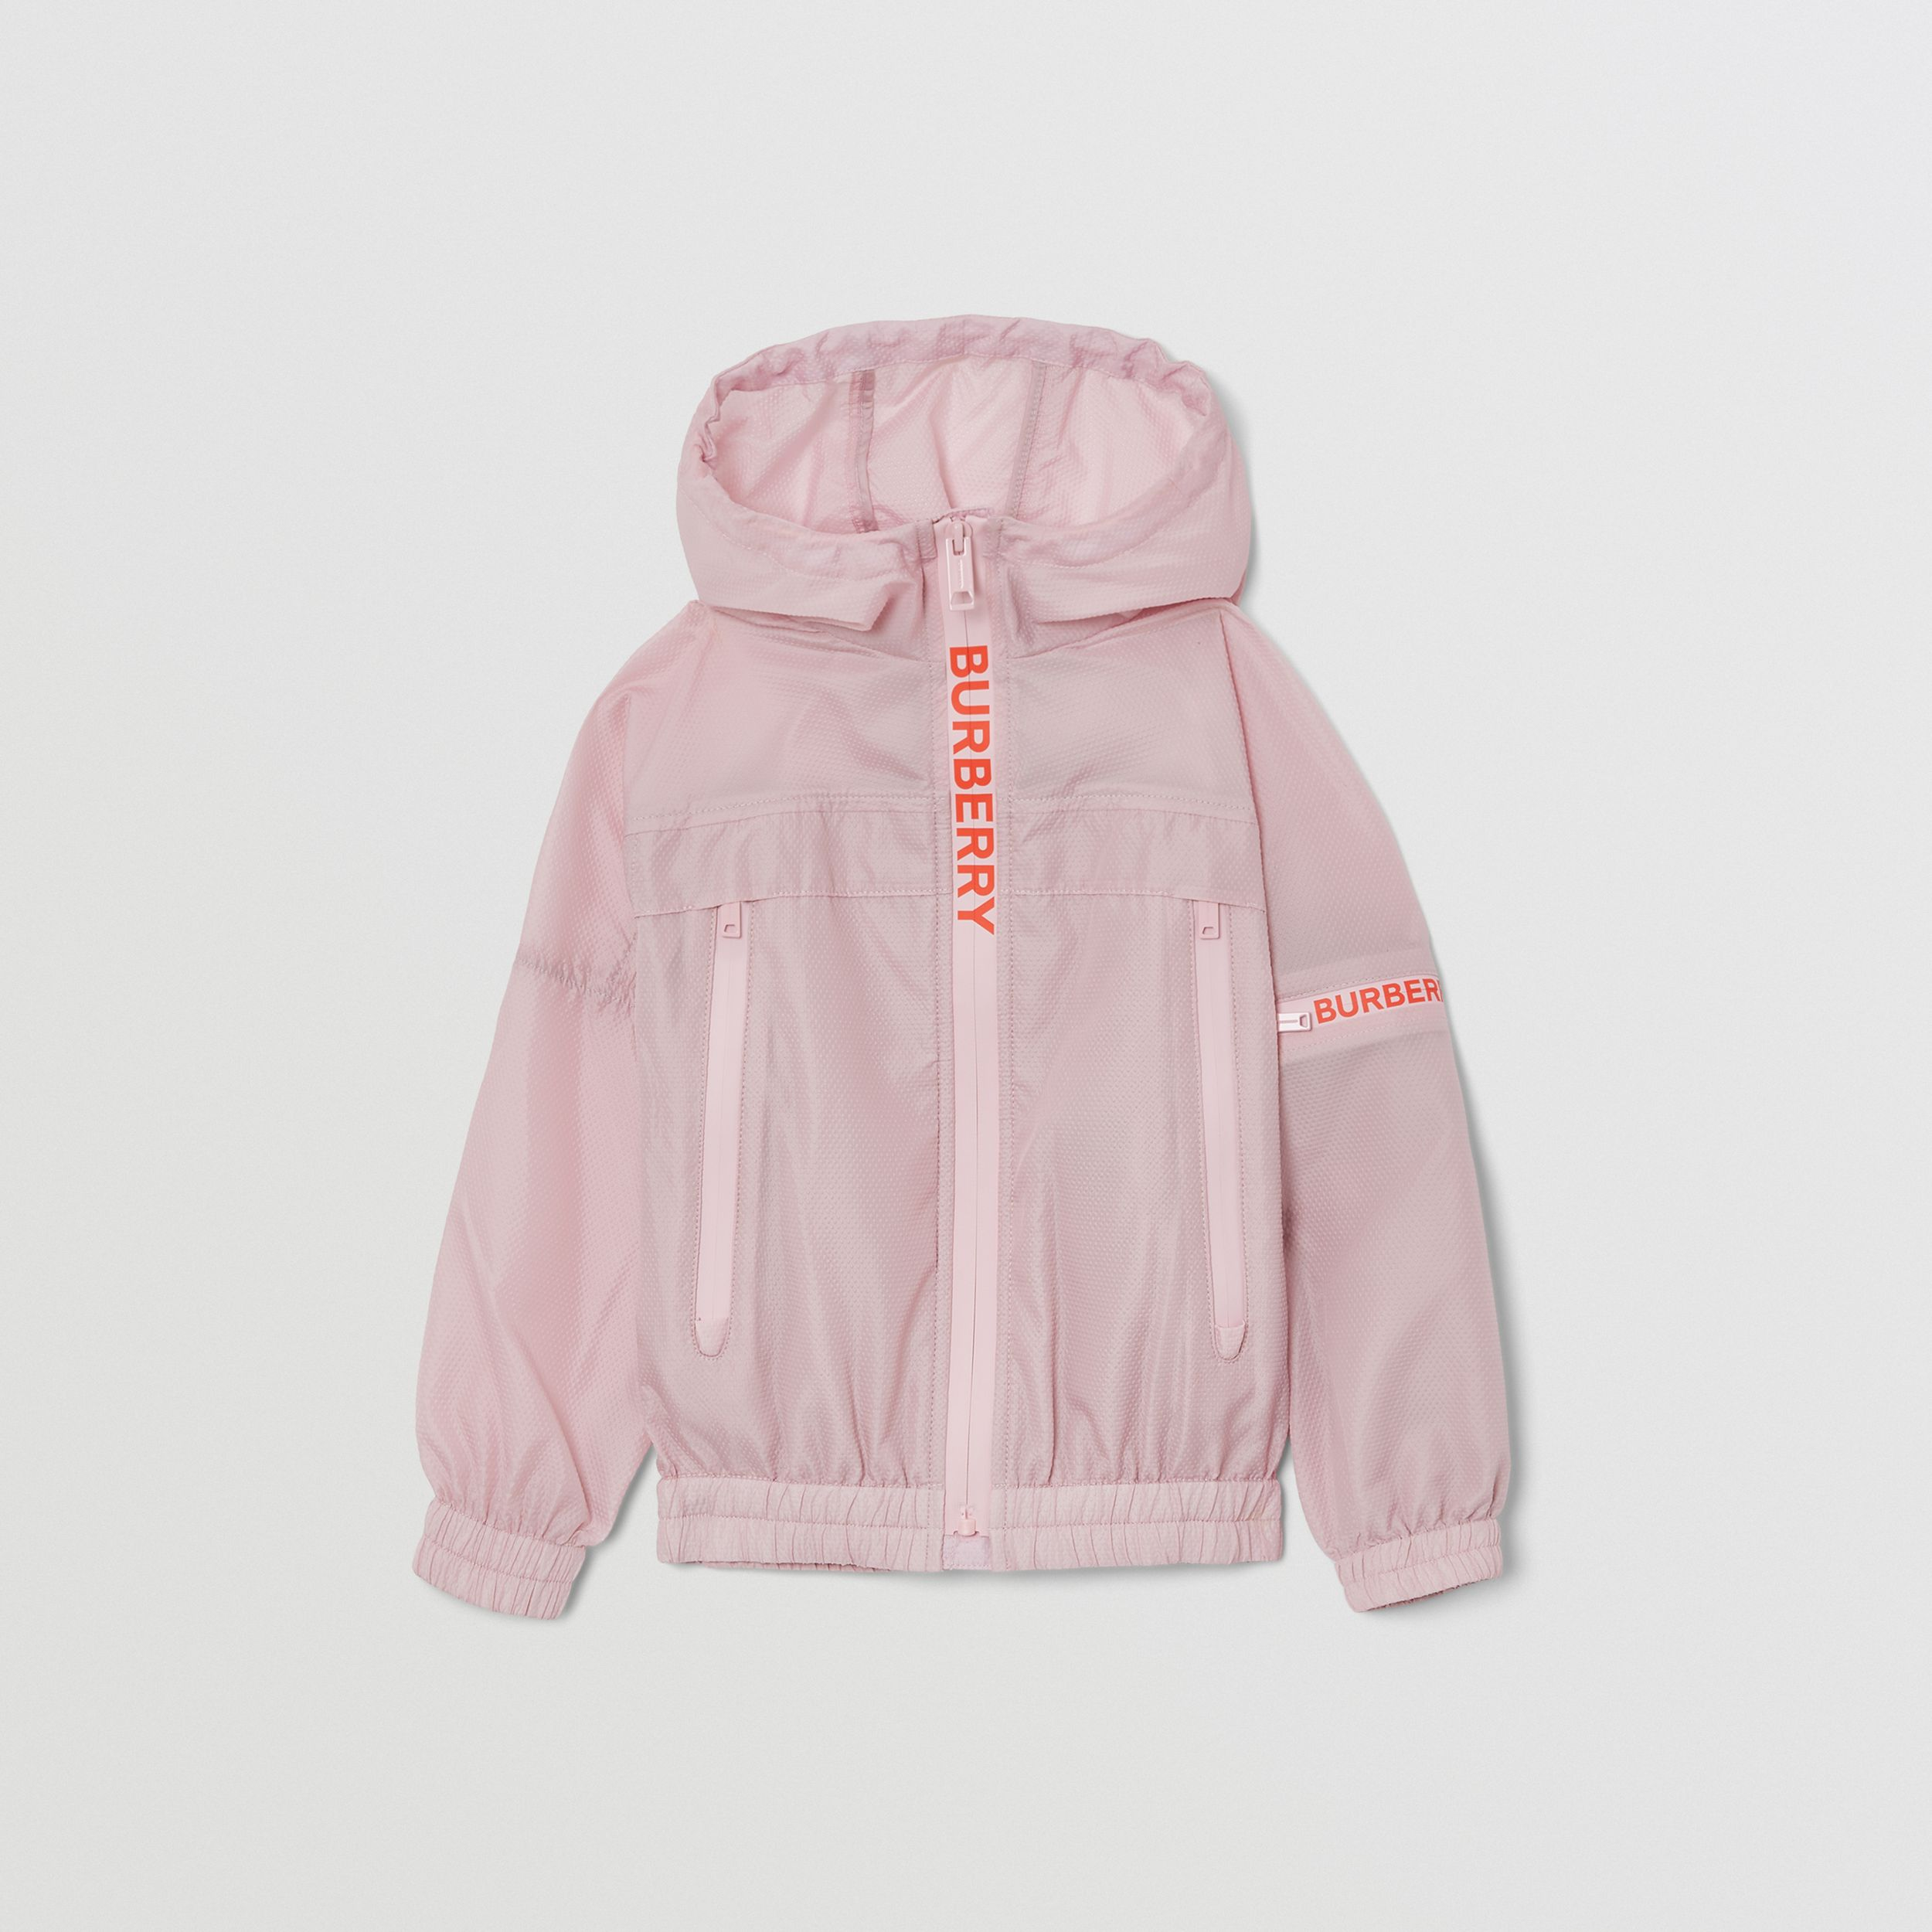 Logo Print Lightweight Hooded Jacket in Pastel Pink | Burberry - 1